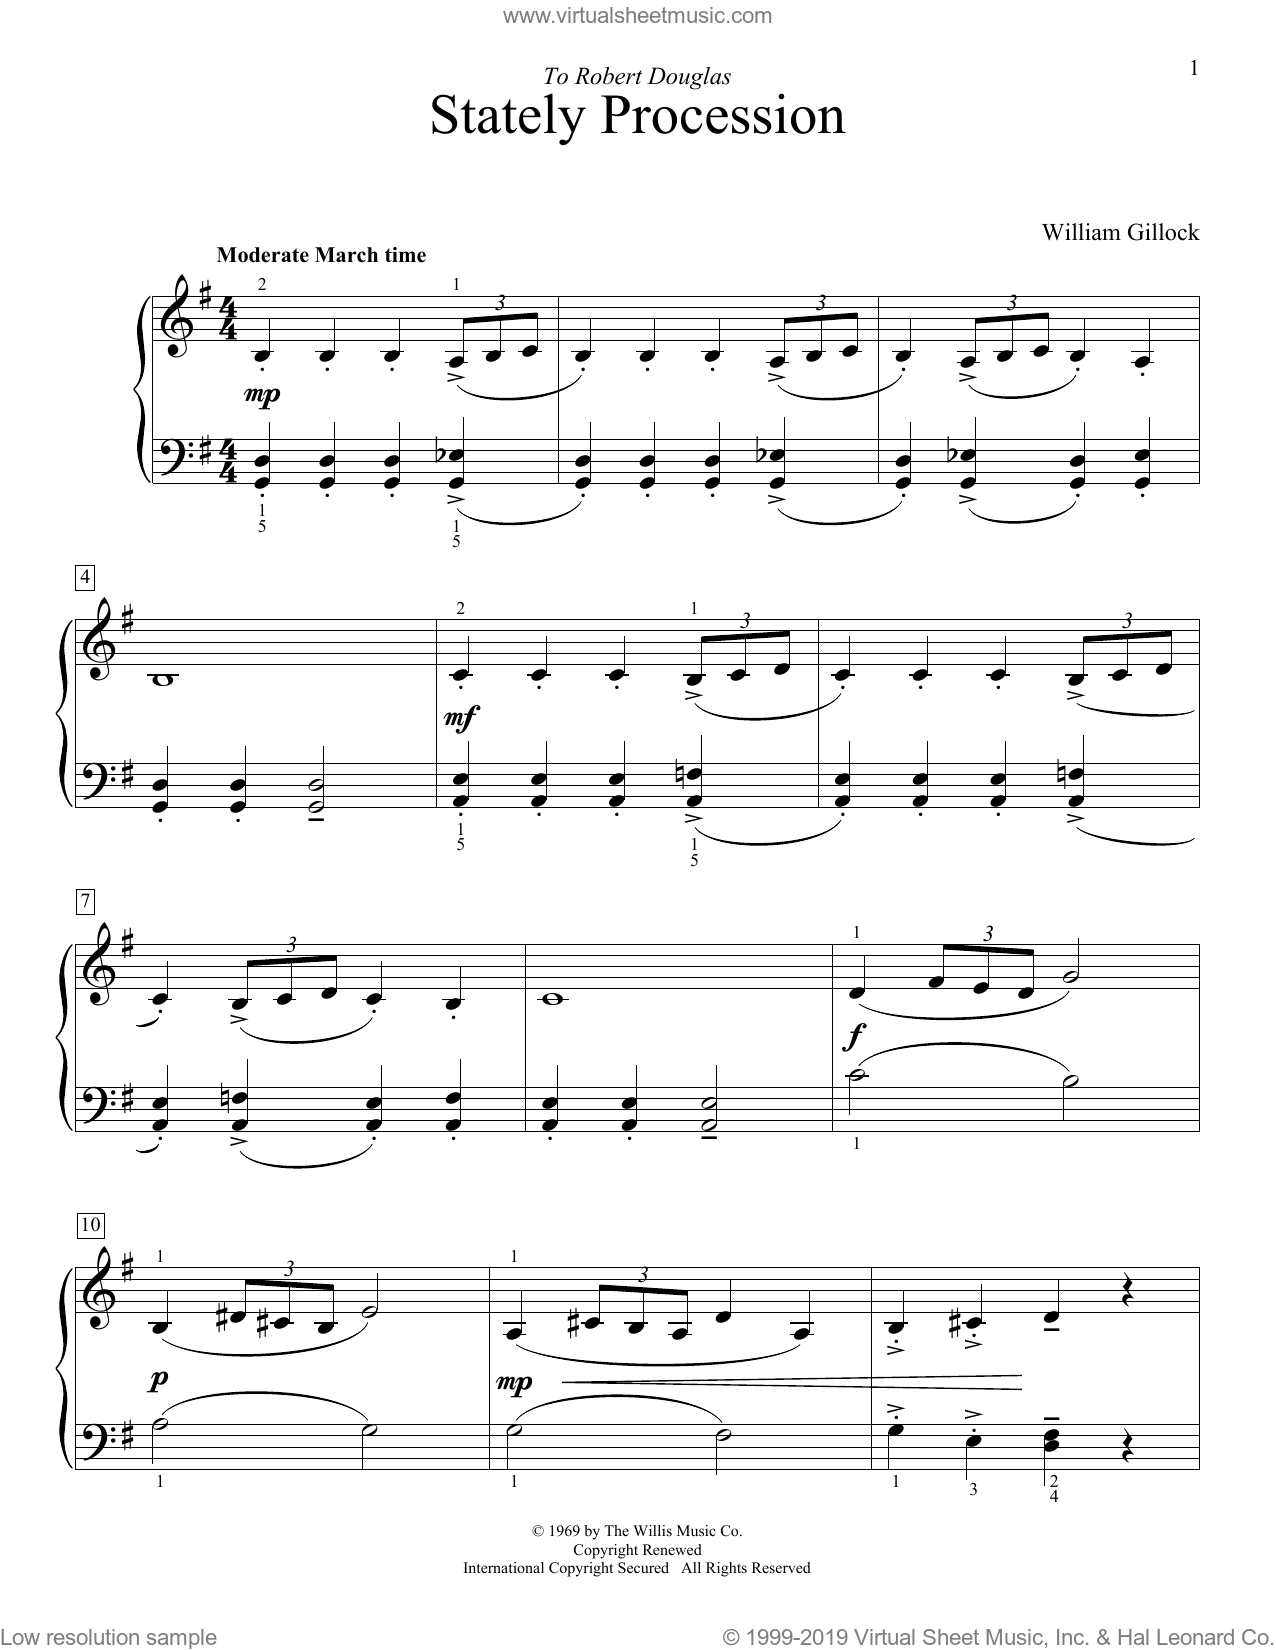 Stately Procession sheet music for piano solo (elementary) by William Gillock